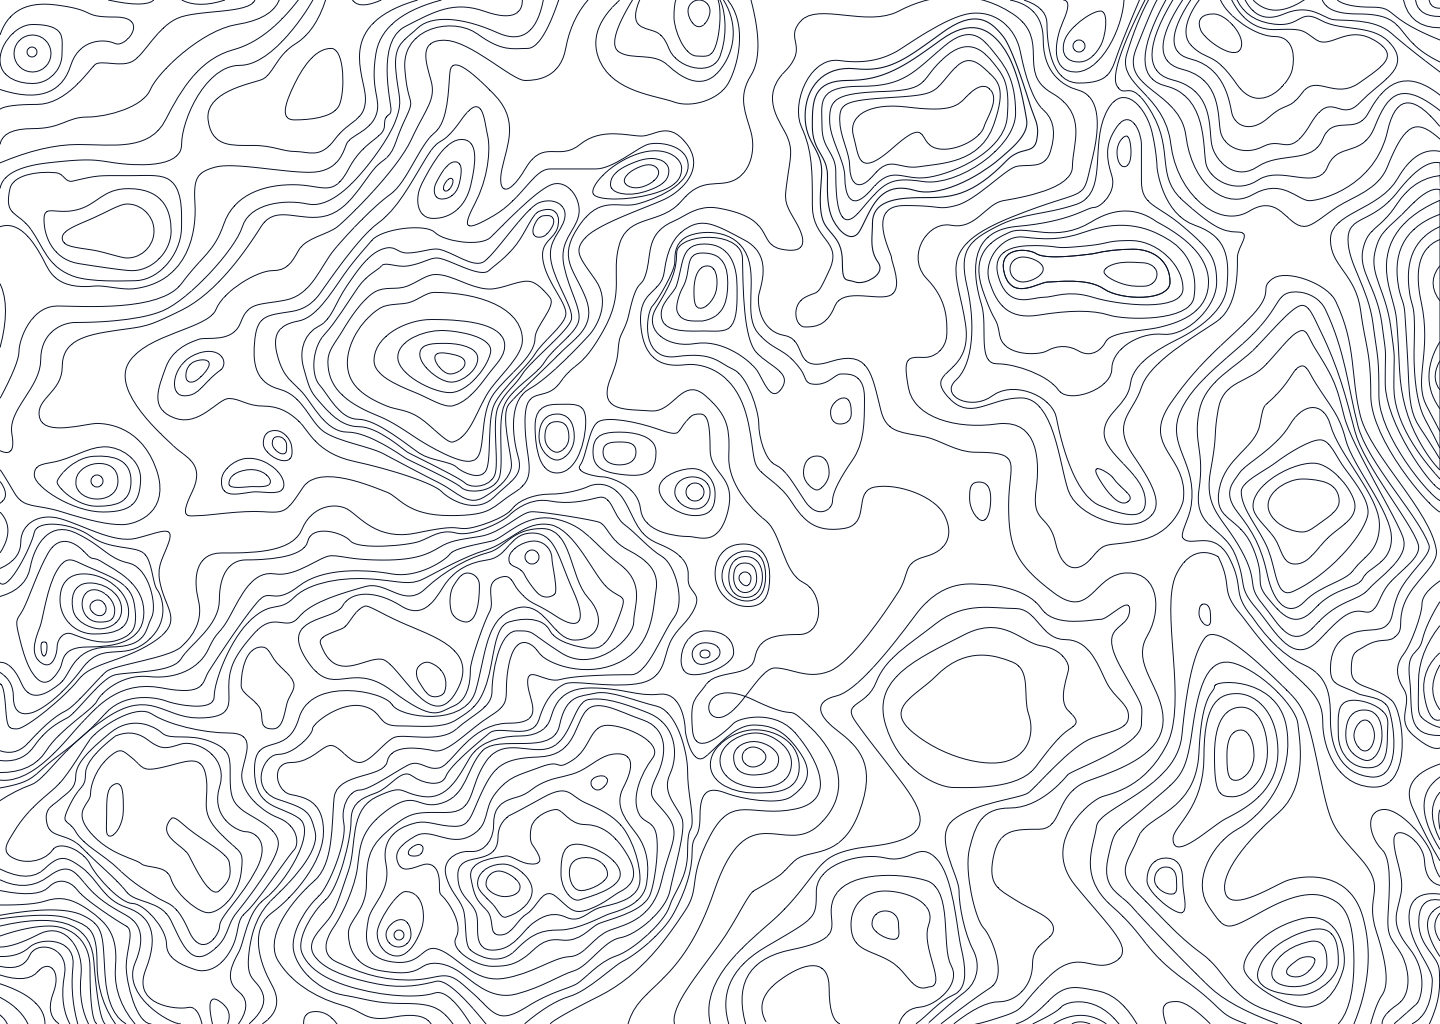 wavepaths topography